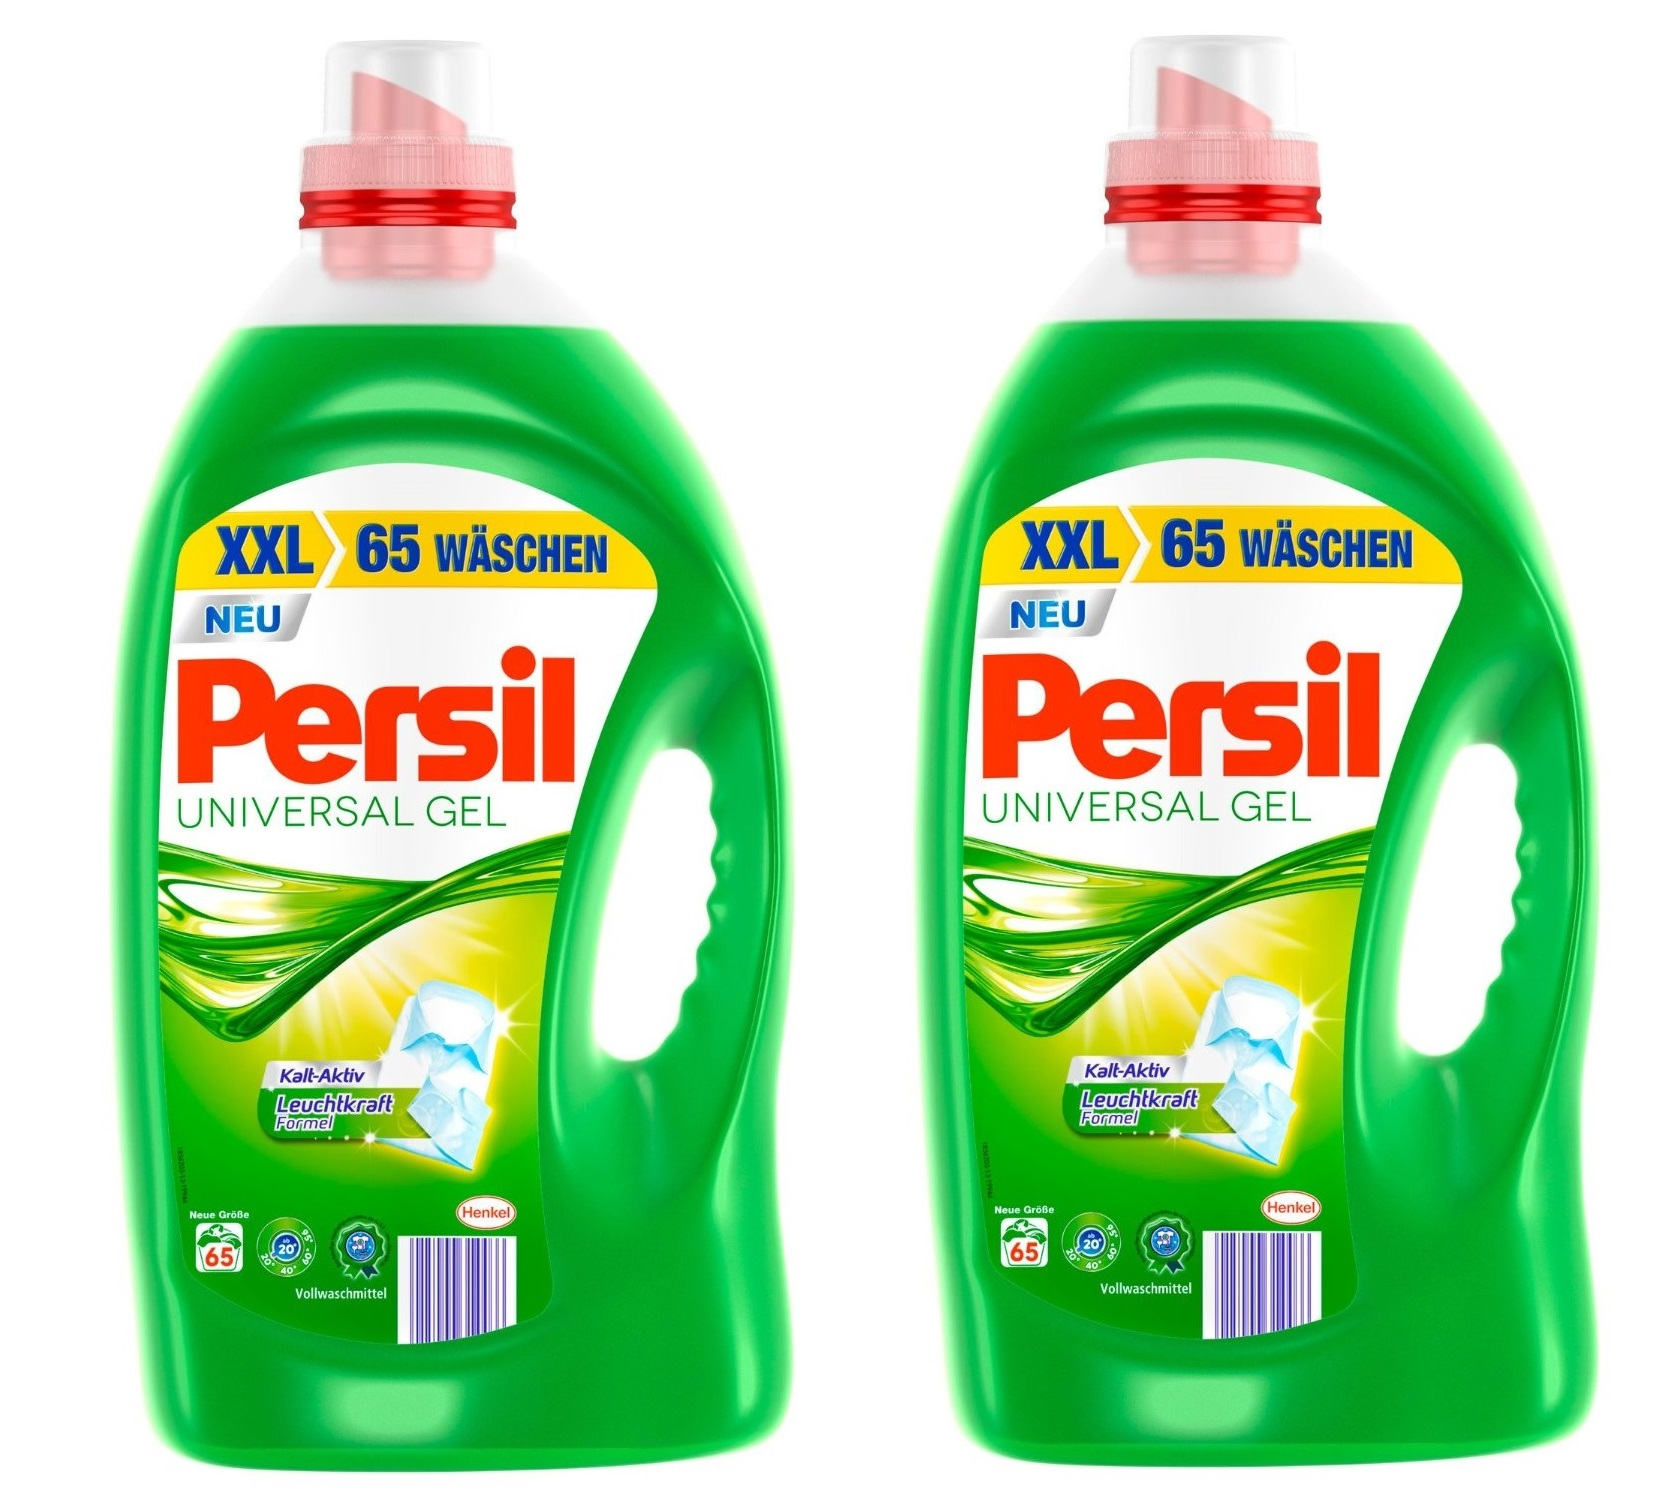 persil universal fl ssigwaschmittel 2x 65 wl waschmittel fl ssig gel waschpulver ebay. Black Bedroom Furniture Sets. Home Design Ideas